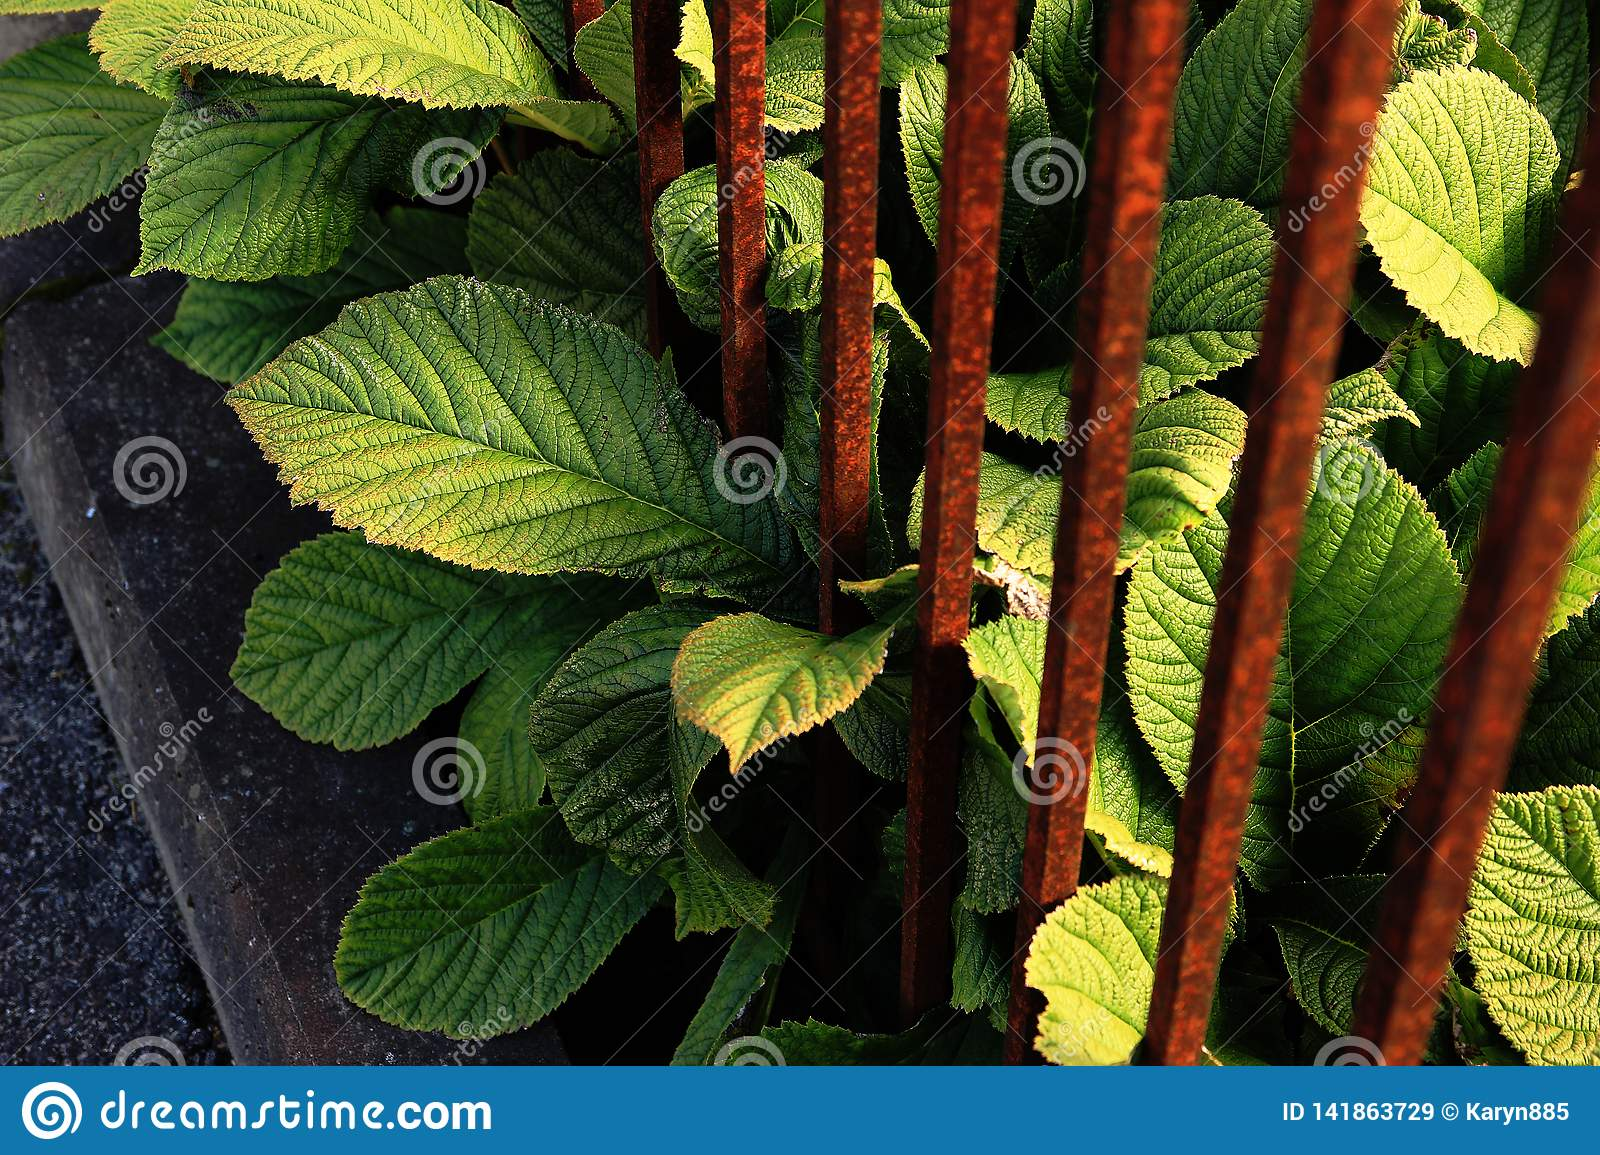 Green Large Leaves with Rusty Bars